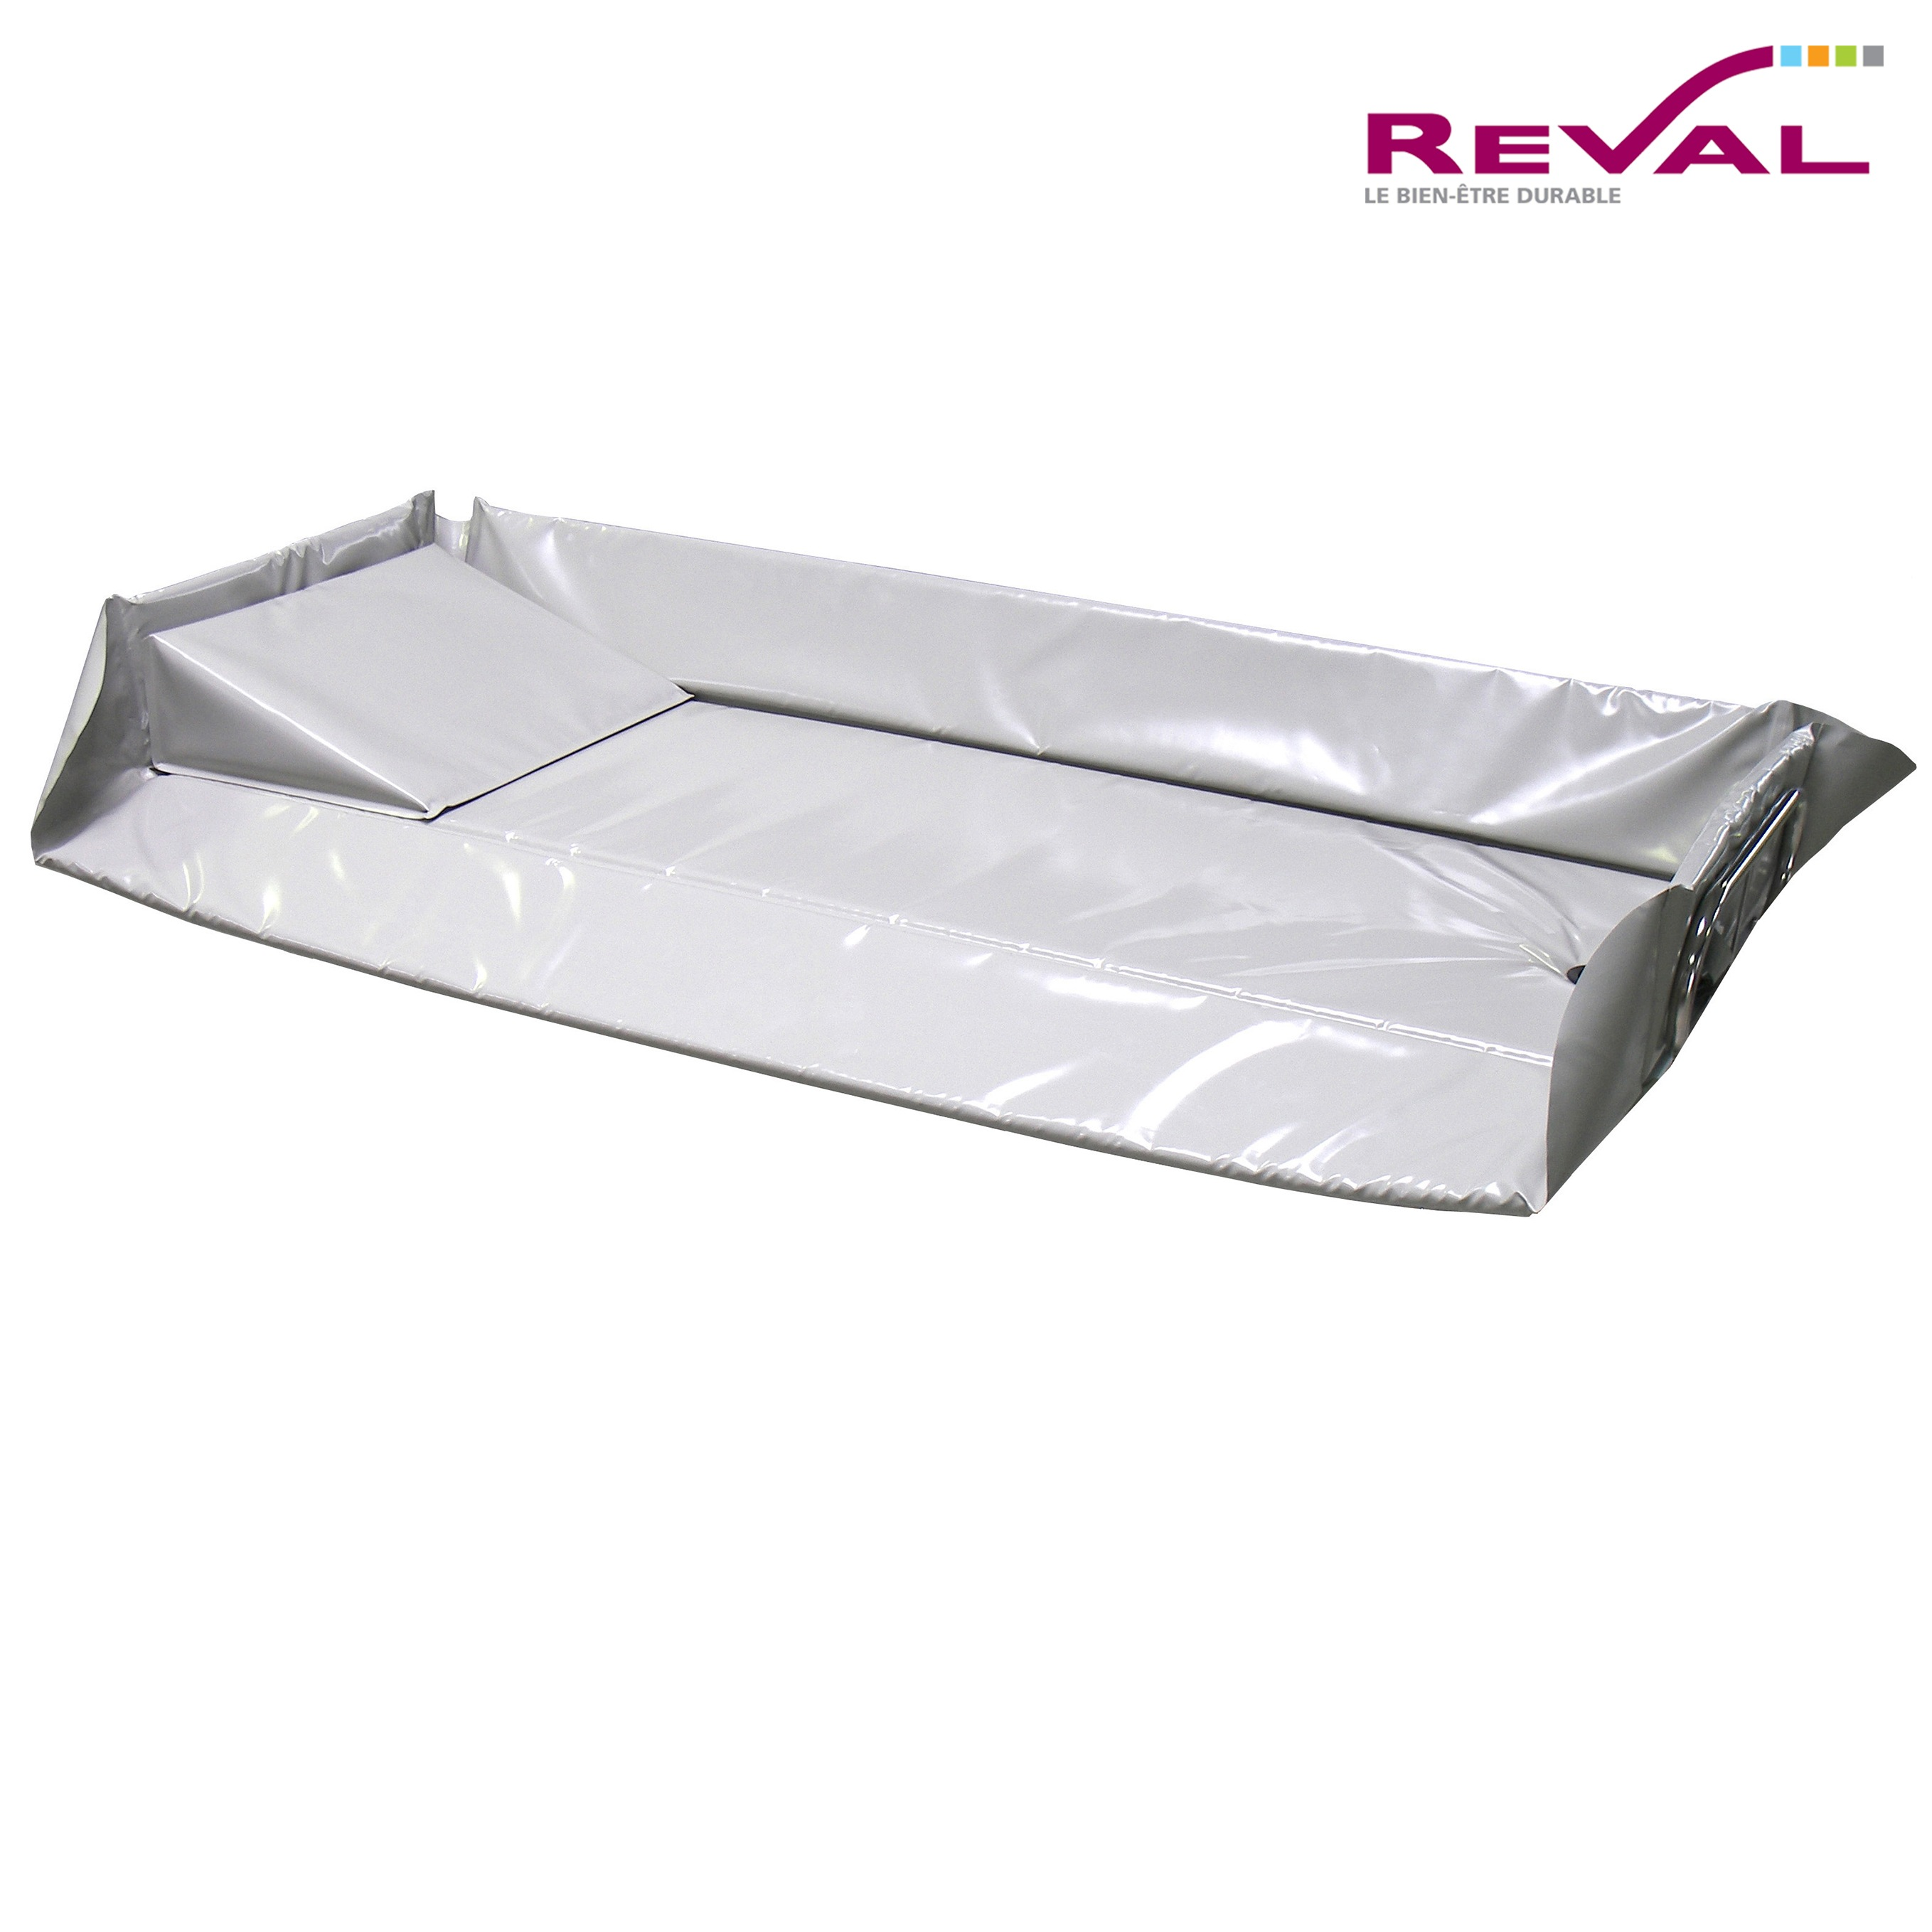 matelas pour chariots de douche toutes marques france reval. Black Bedroom Furniture Sets. Home Design Ideas